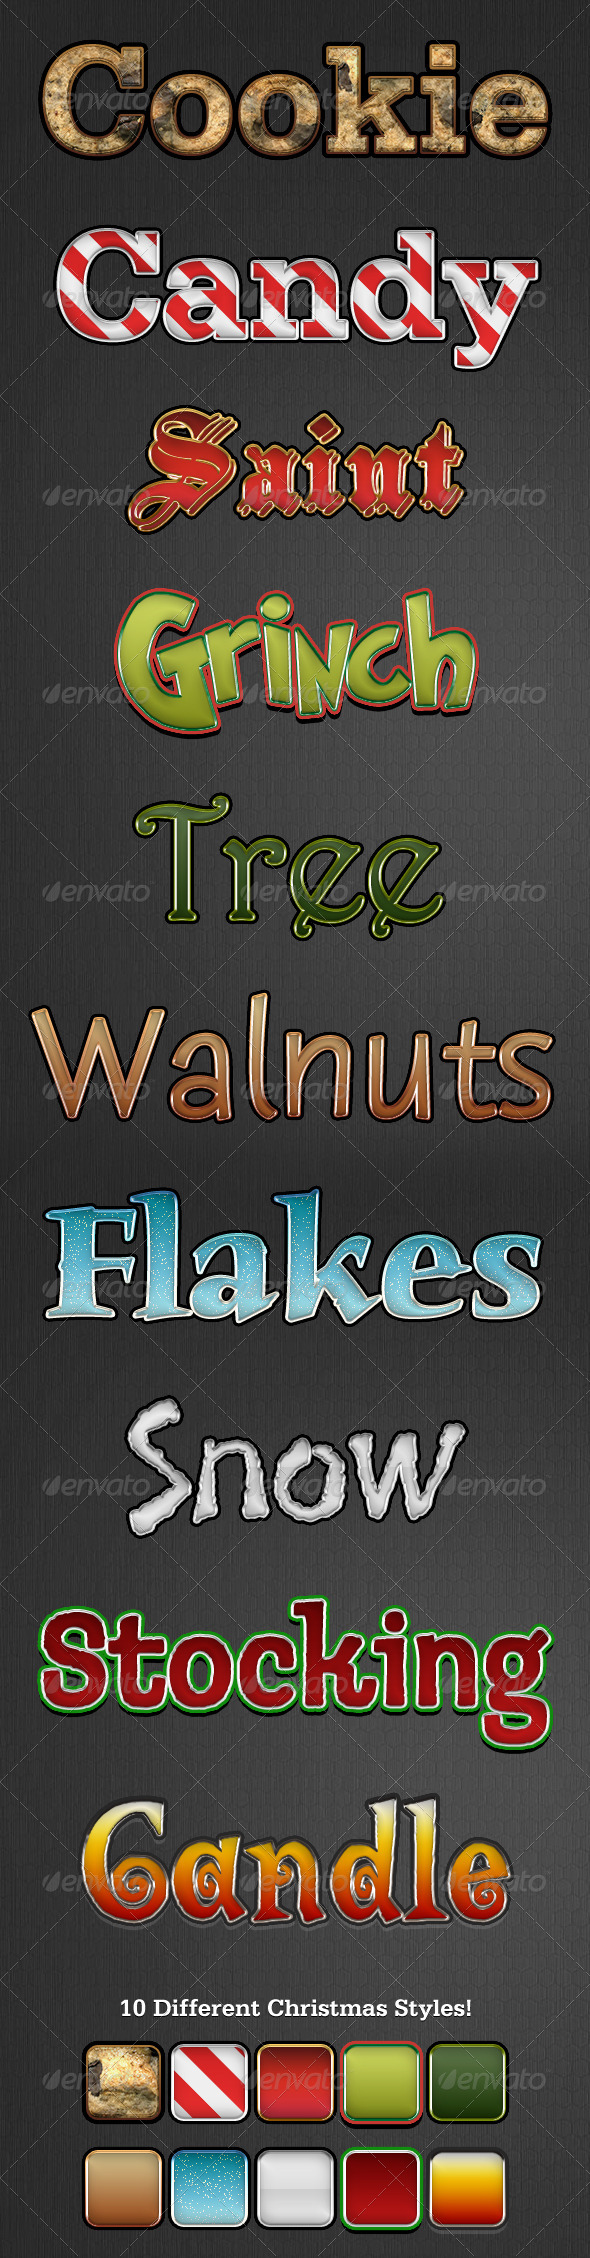 Holiday Style v2 - Text Effects Styles